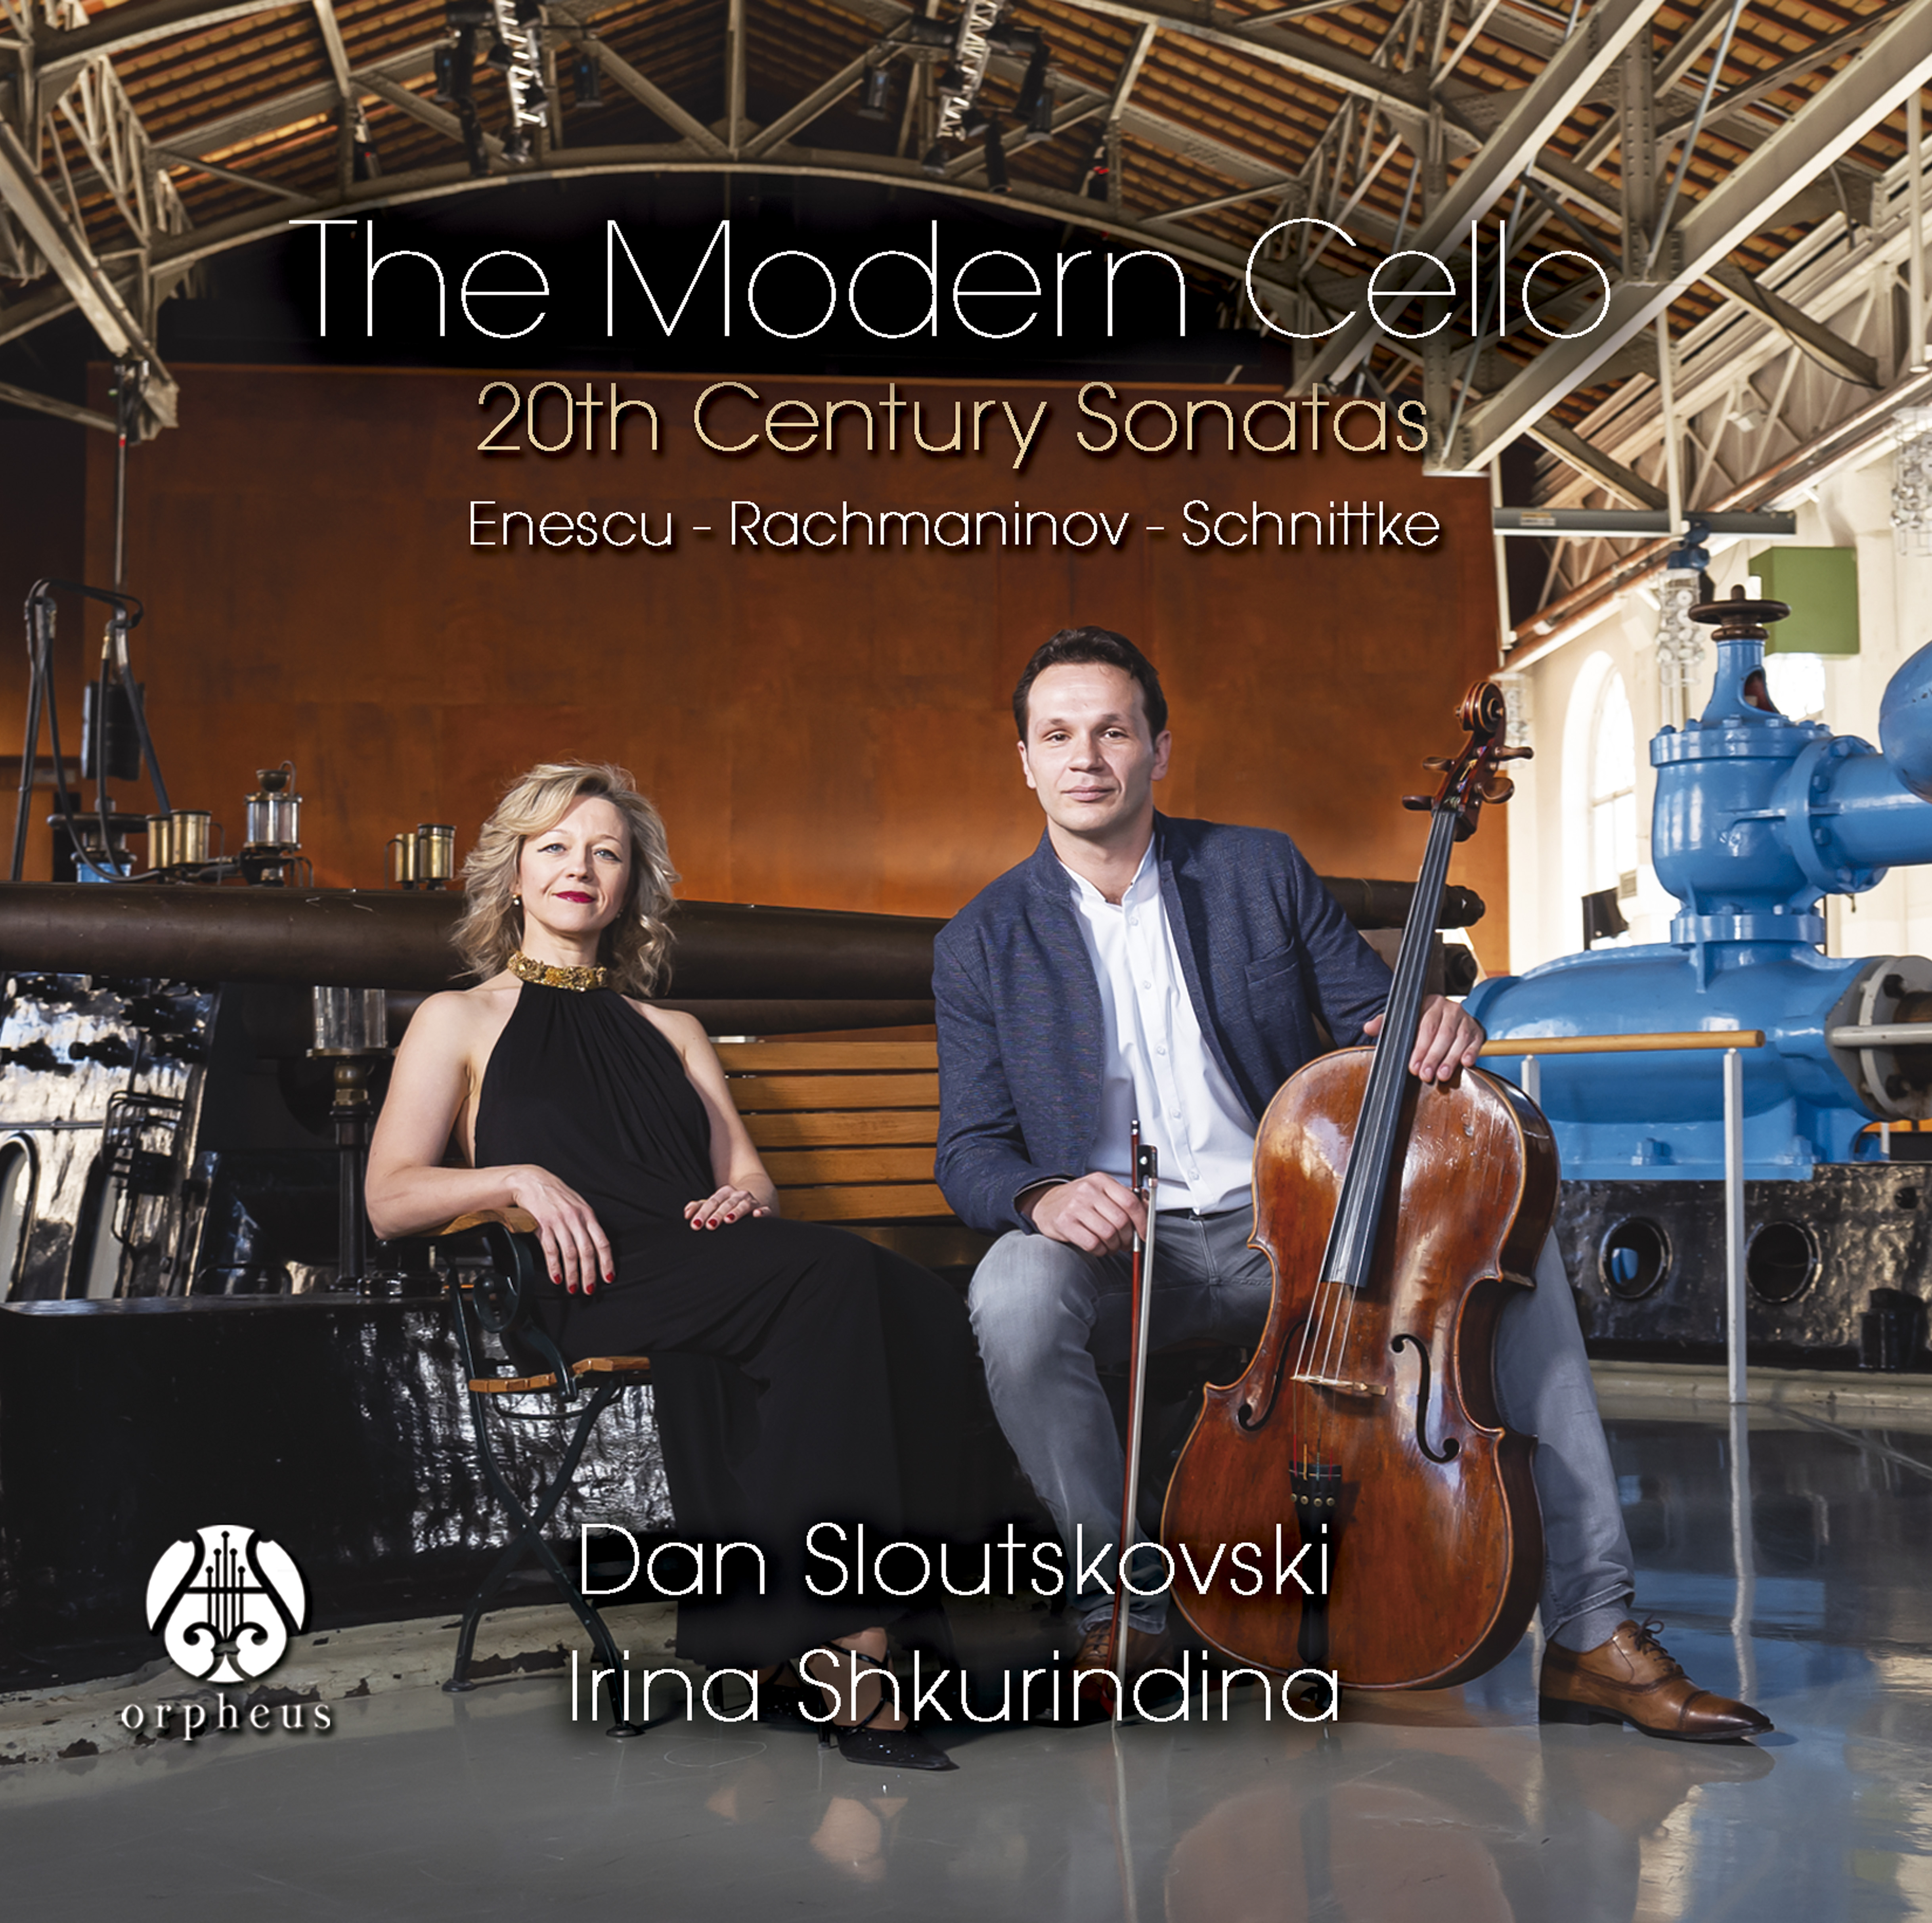 The Modern Cello, Dan Sloutskovski